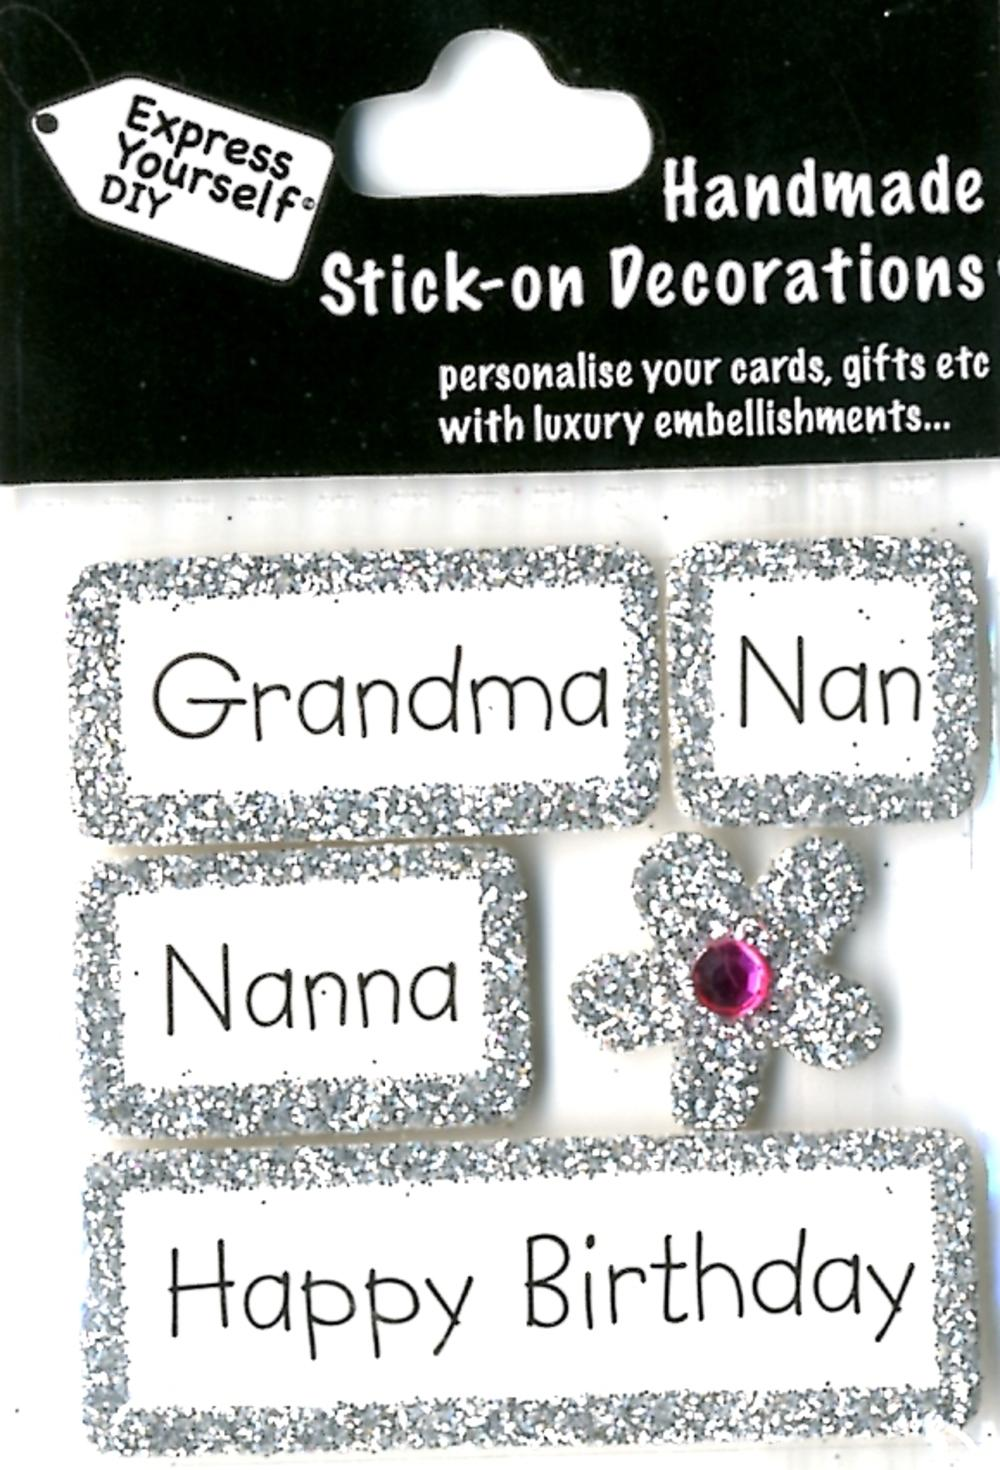 Happy Birthday Grandma Nan Nana DIY Greeting Card Toppers